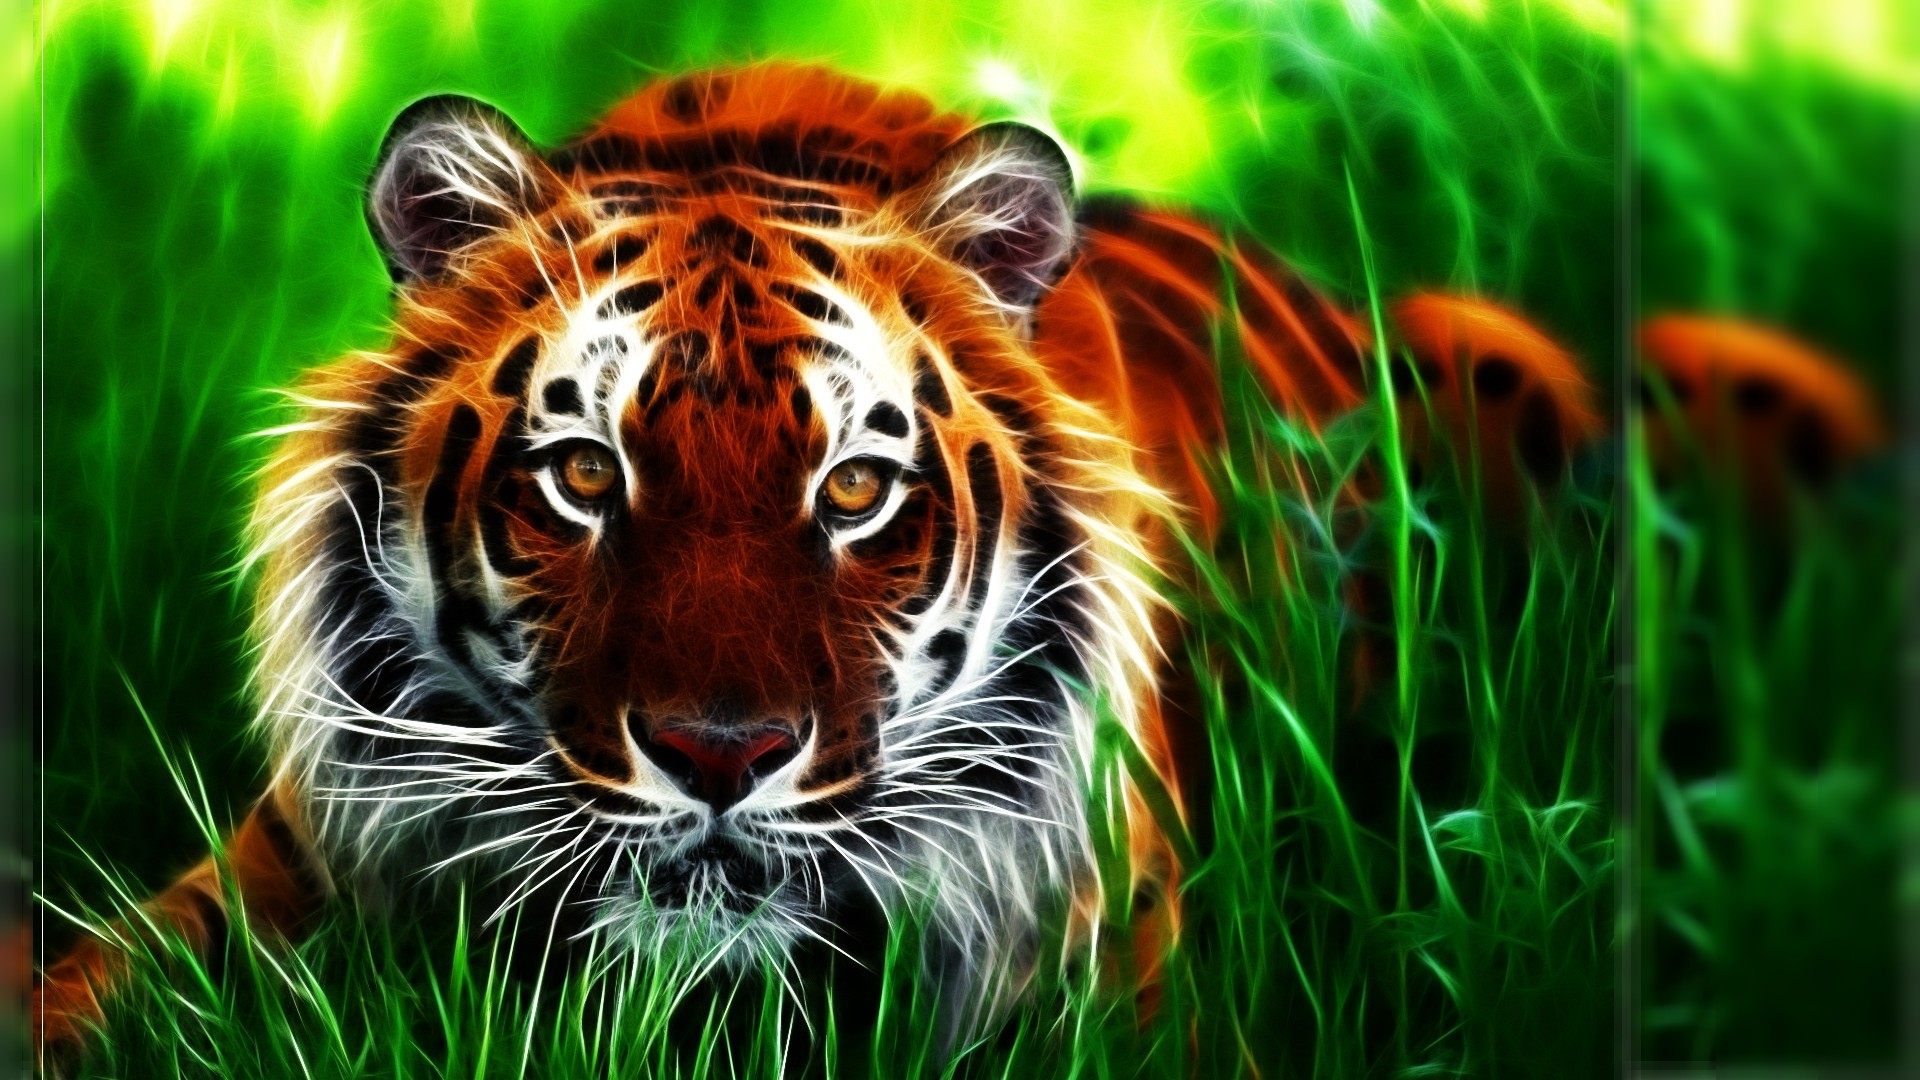 Cool pictures of tigers